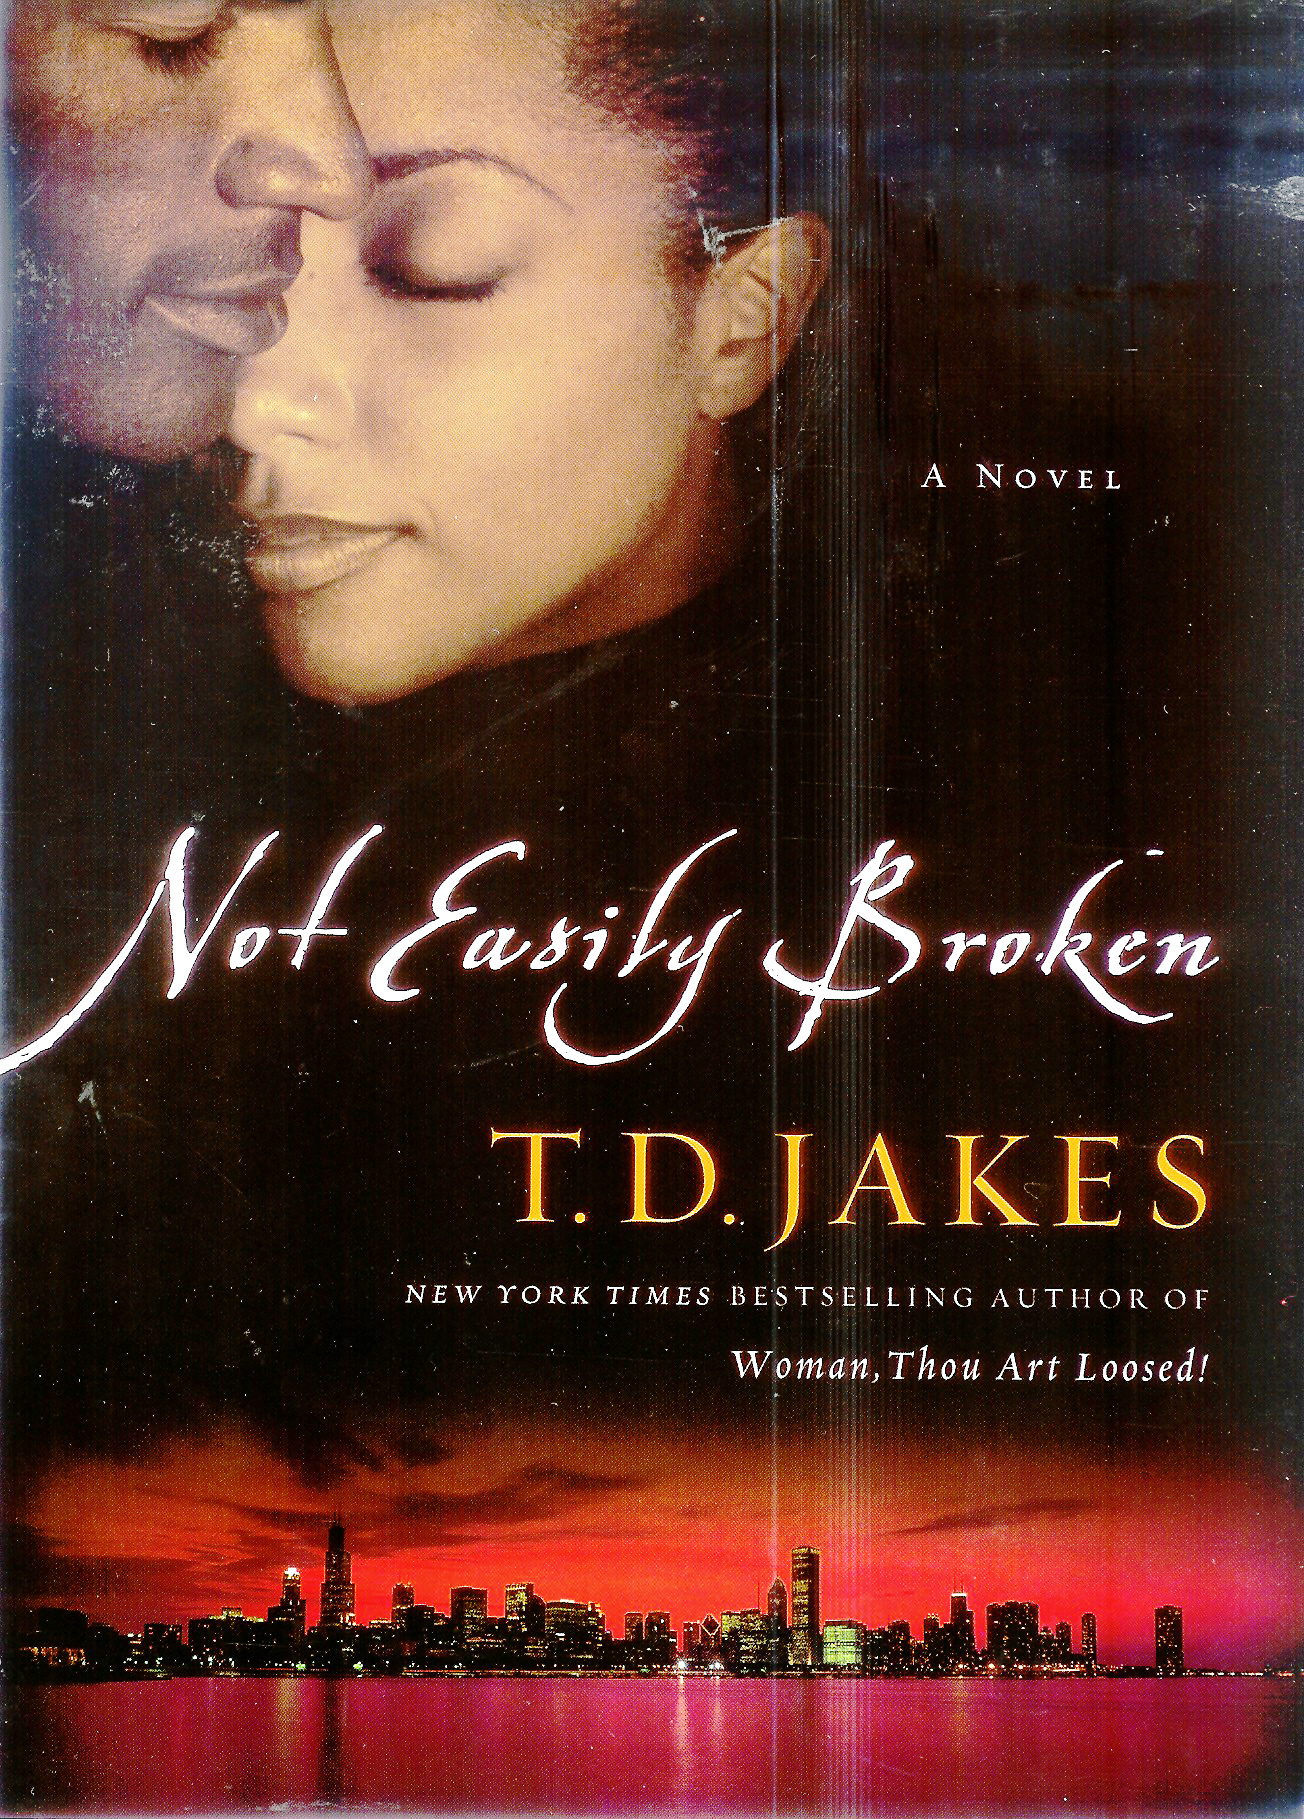 u0026quot not easily broken  u0026quot  a novel by t d  jakes hits bookstores